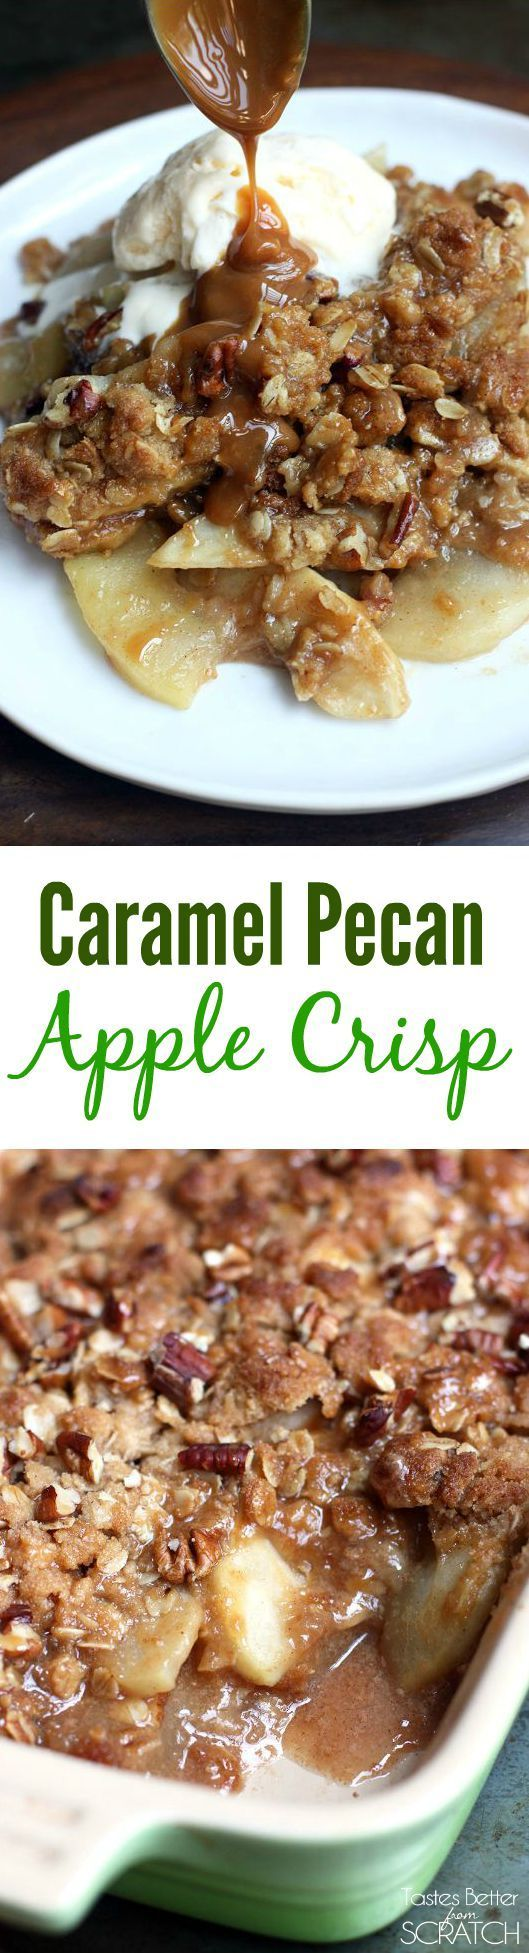 This apple crisp recipe is AMAZING! Tart Granny Smith apples drizzled with caramel and topped with a pecan, oat crumble, baked to perfection!